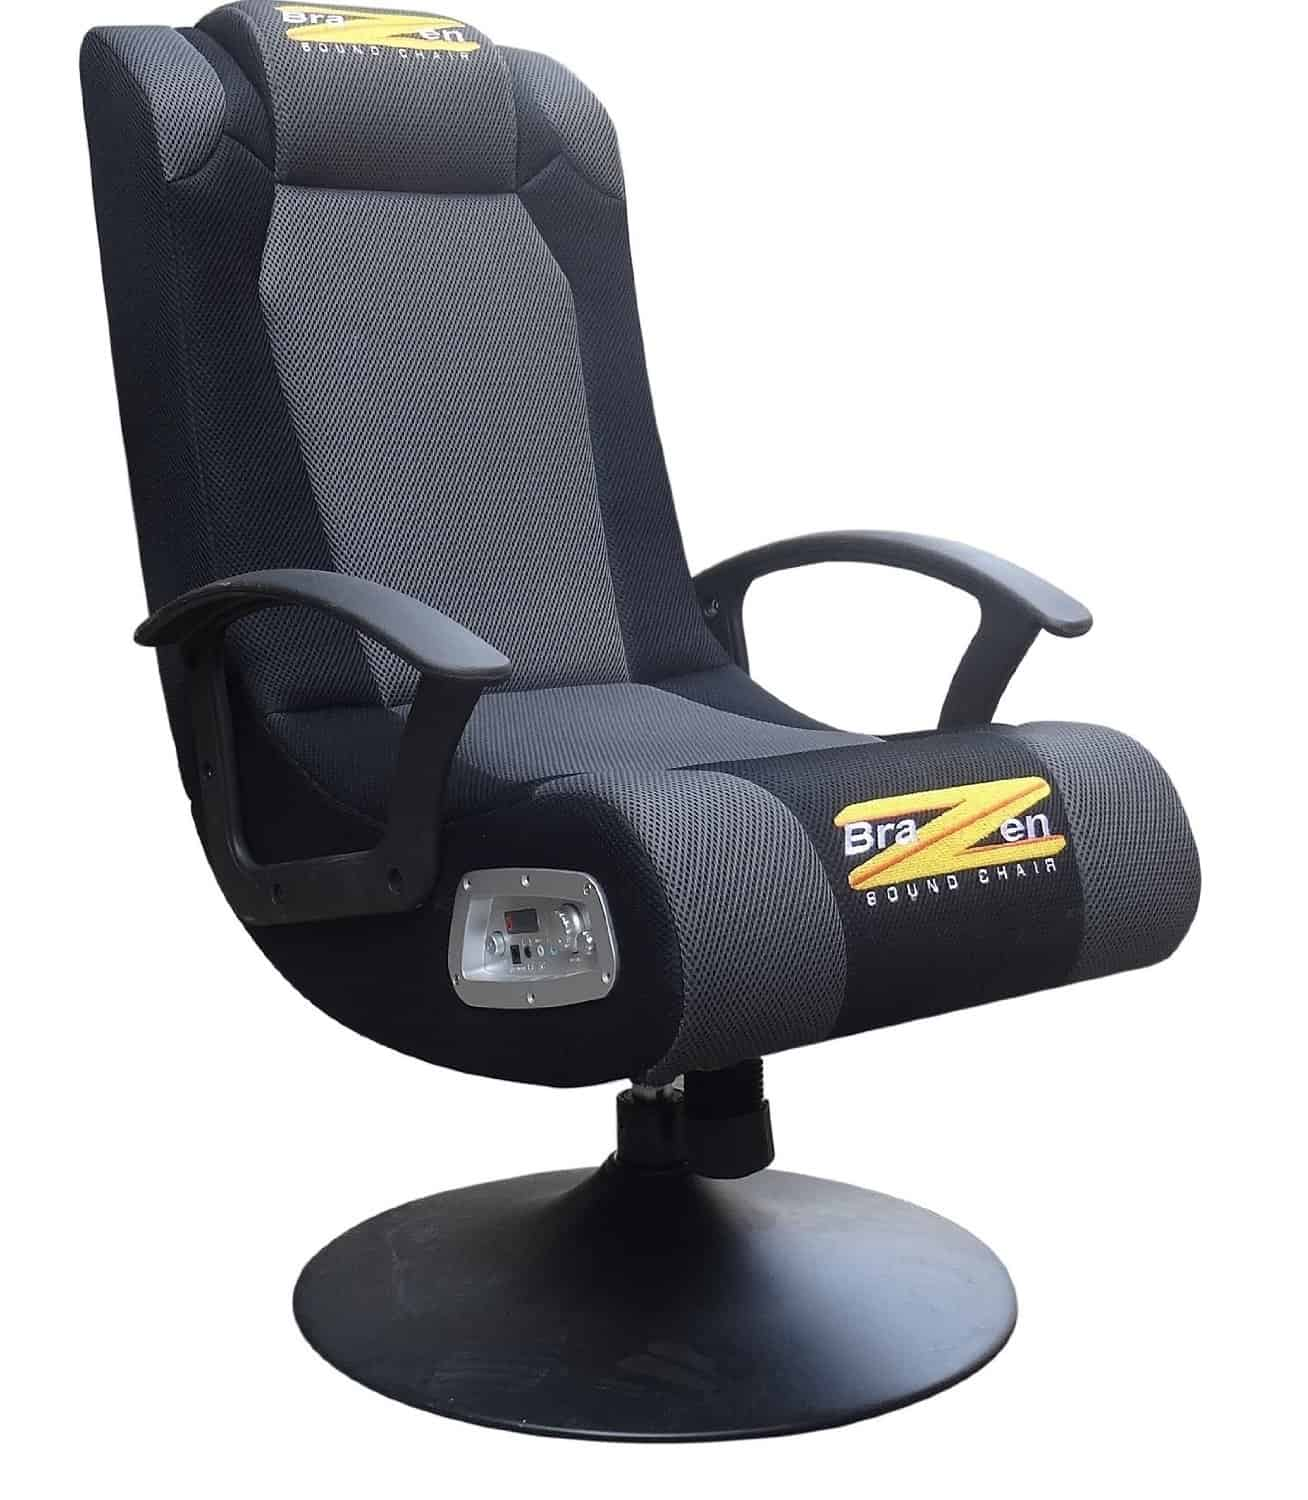 Awe Inspiring Brazen Stag 2 1 Surround Sound Gaming Chair Review Theyellowbook Wood Chair Design Ideas Theyellowbookinfo